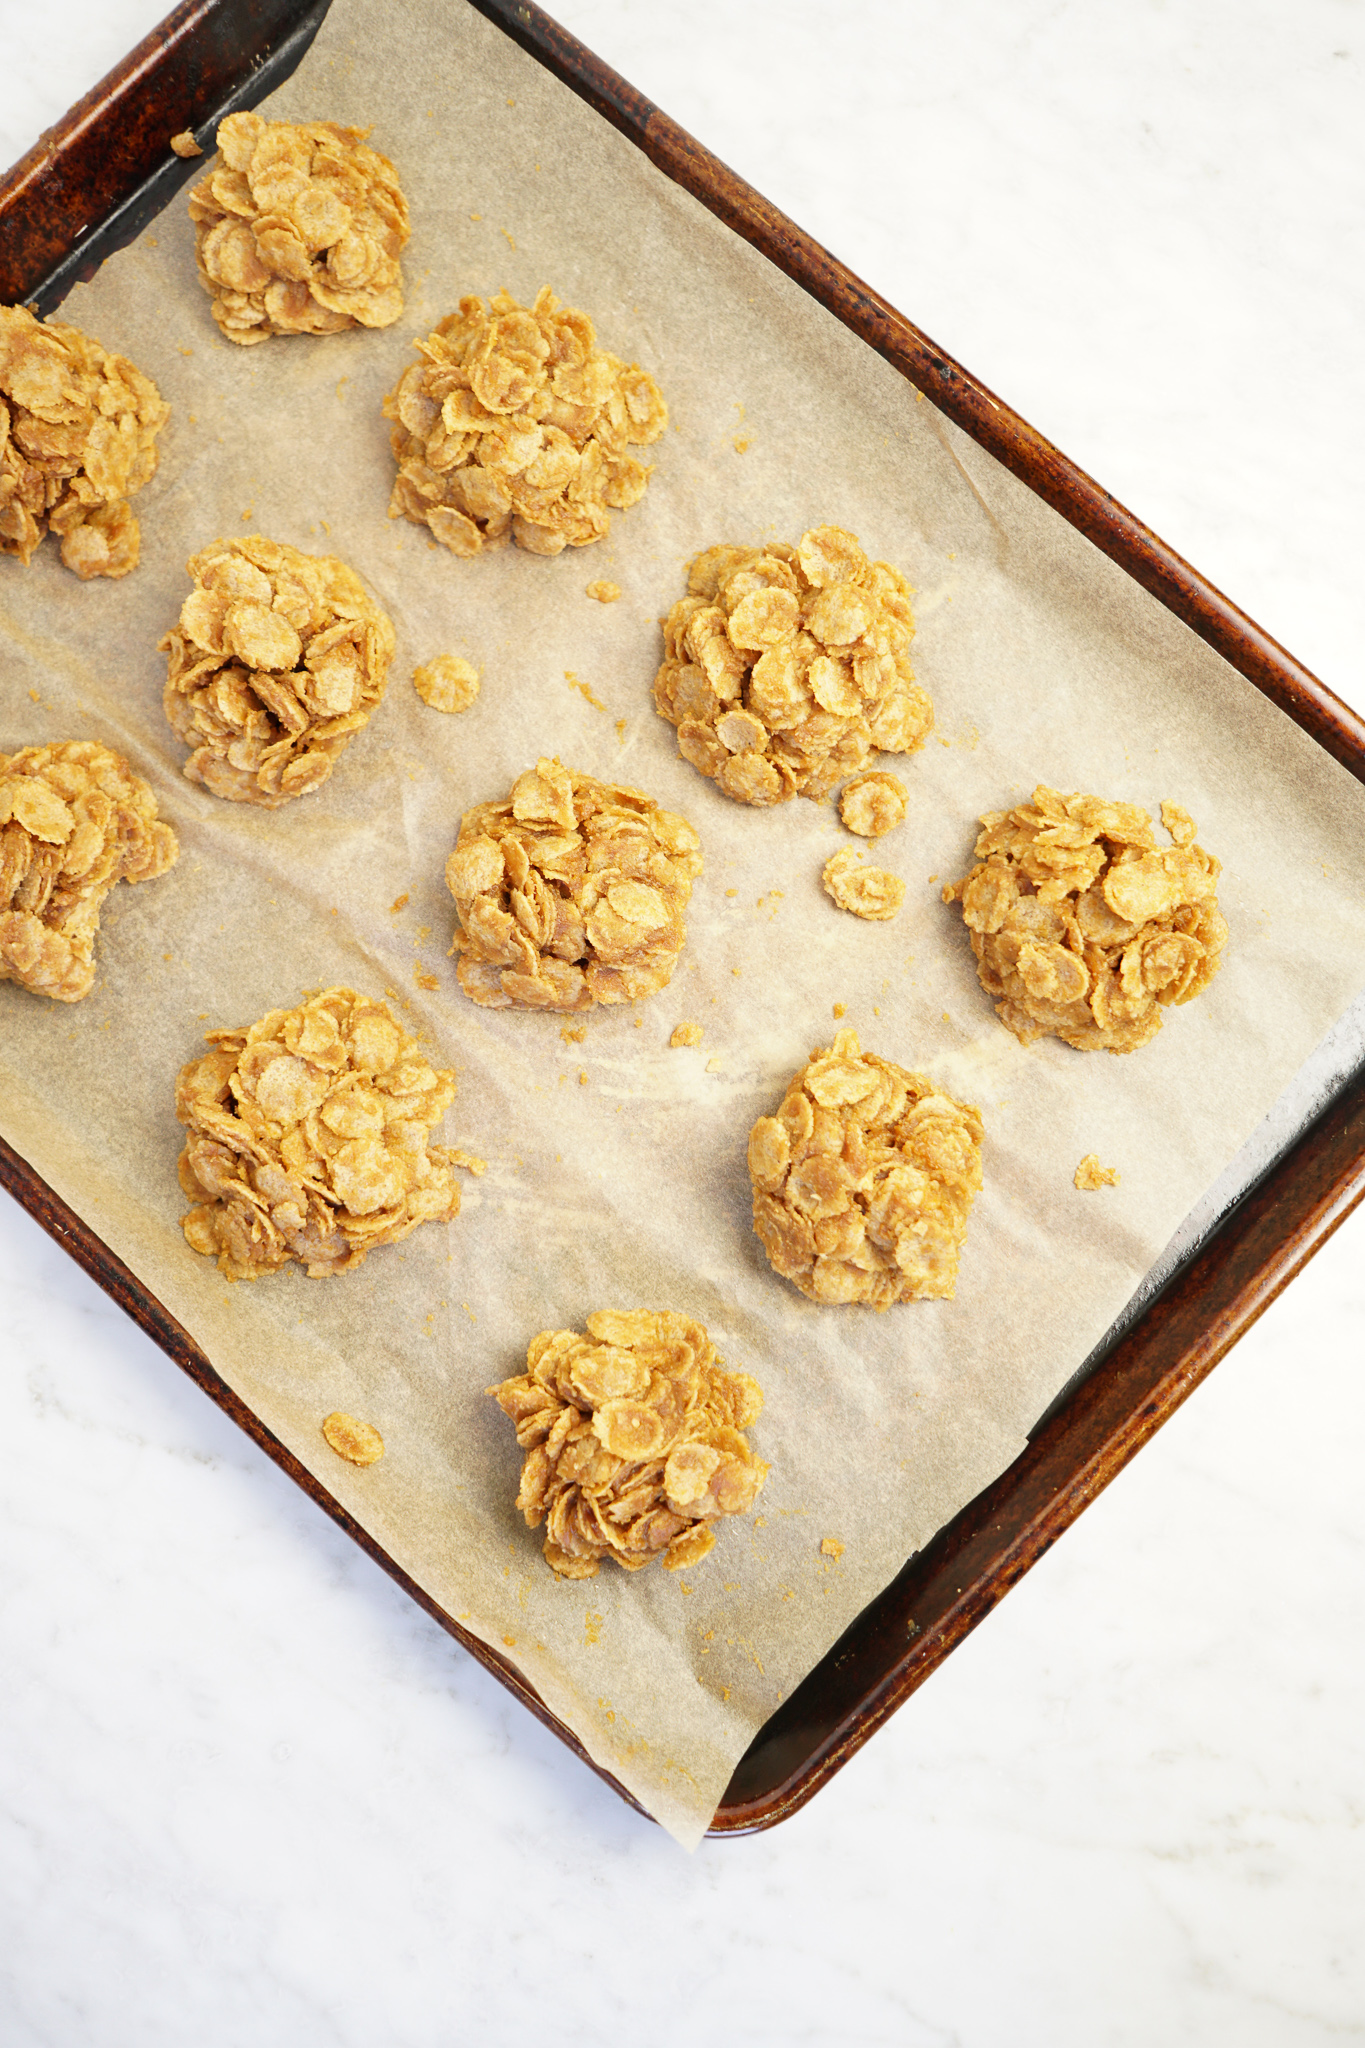 Peanut butter pumpkin cornflake clusters on a pan